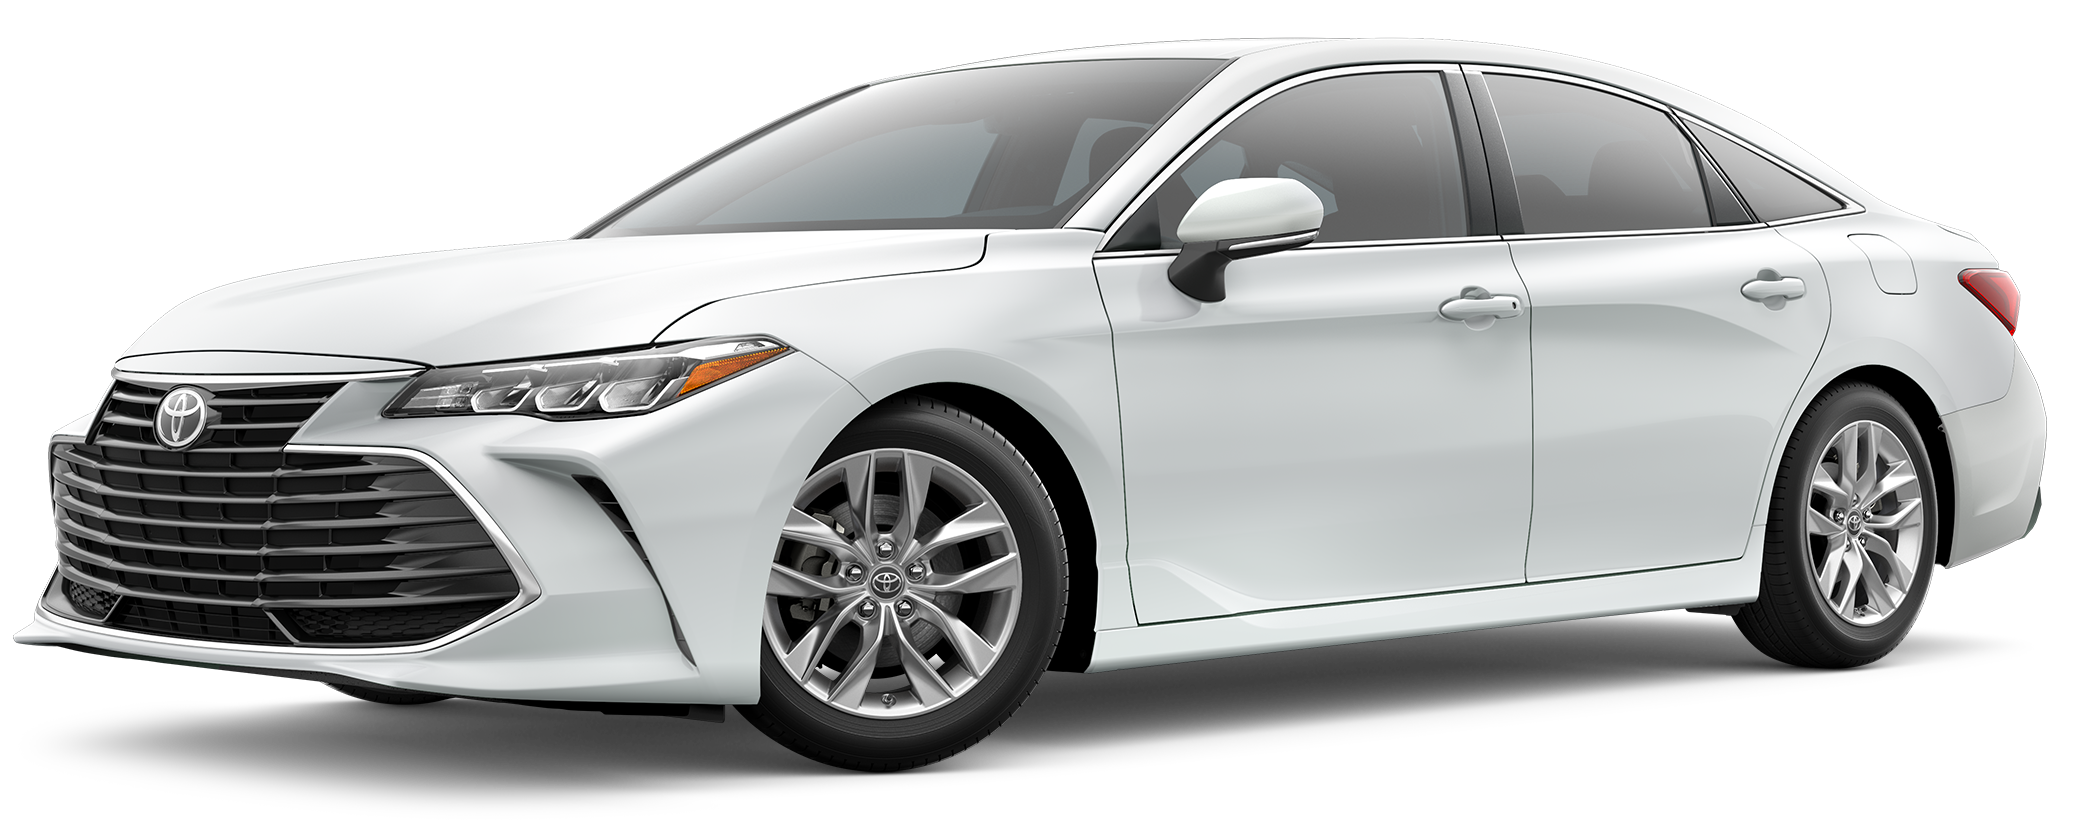 Review & Compare the 2019 Toyota Avalon at Larry H. Miller